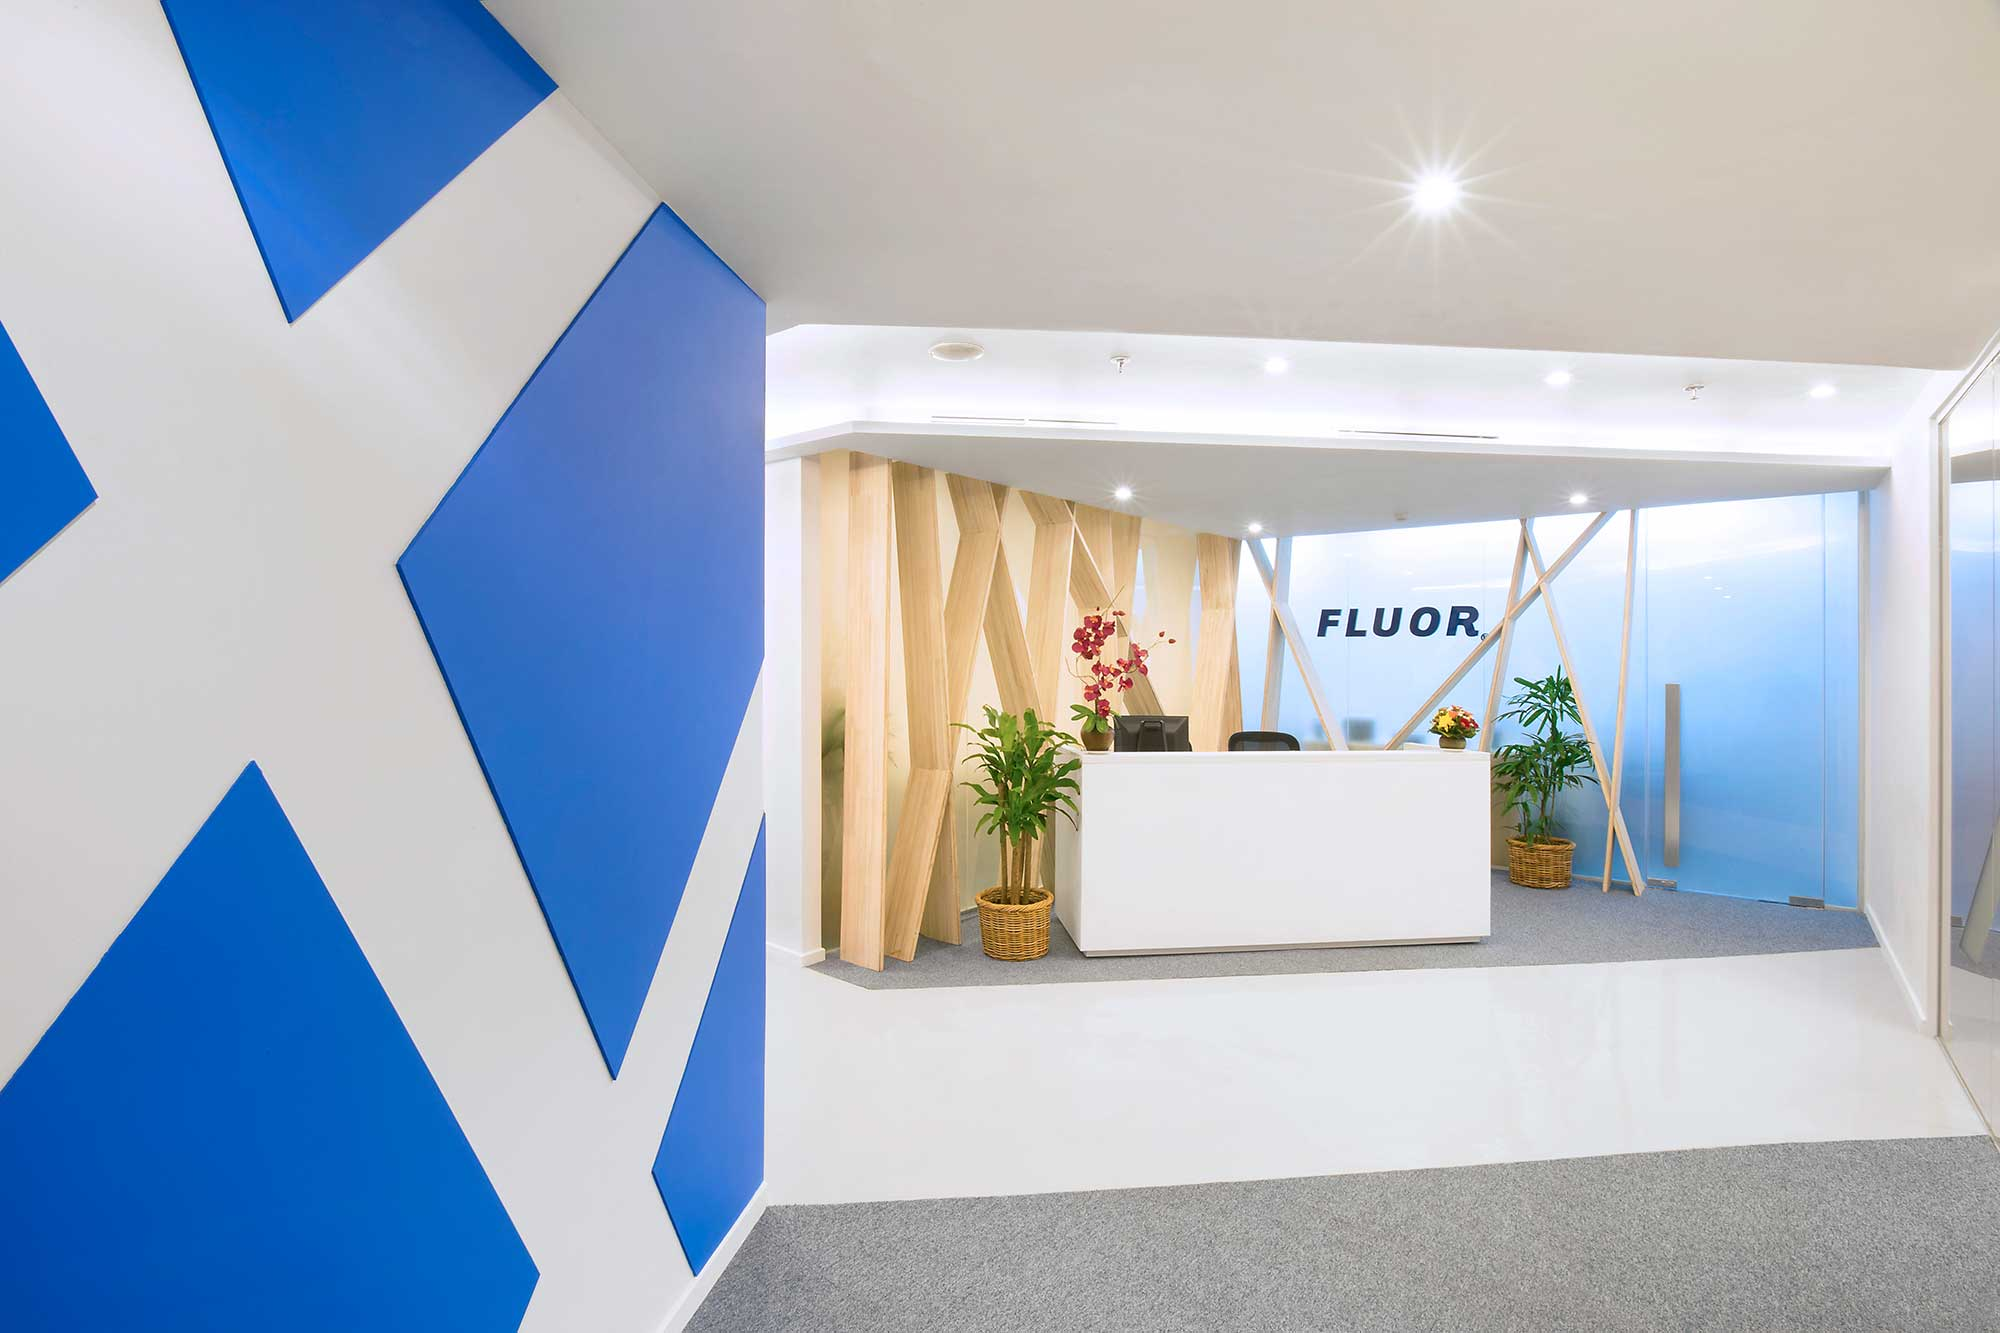 Reception of Fluor's office. Interior Design + Build by AVIP.